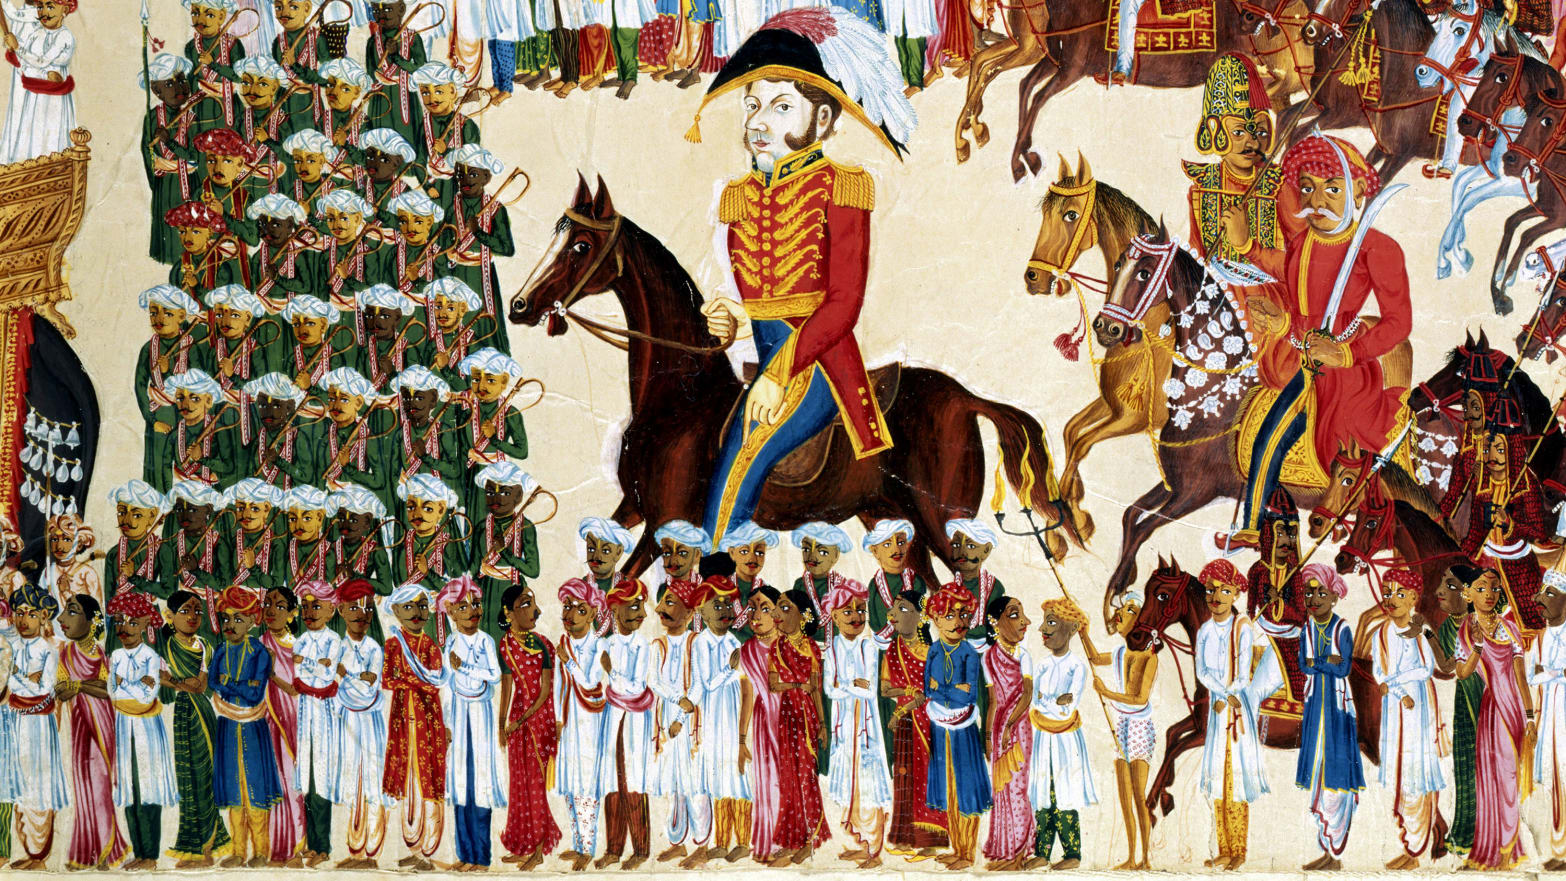 William Dalrymple's 'The Anarchy' About the East India